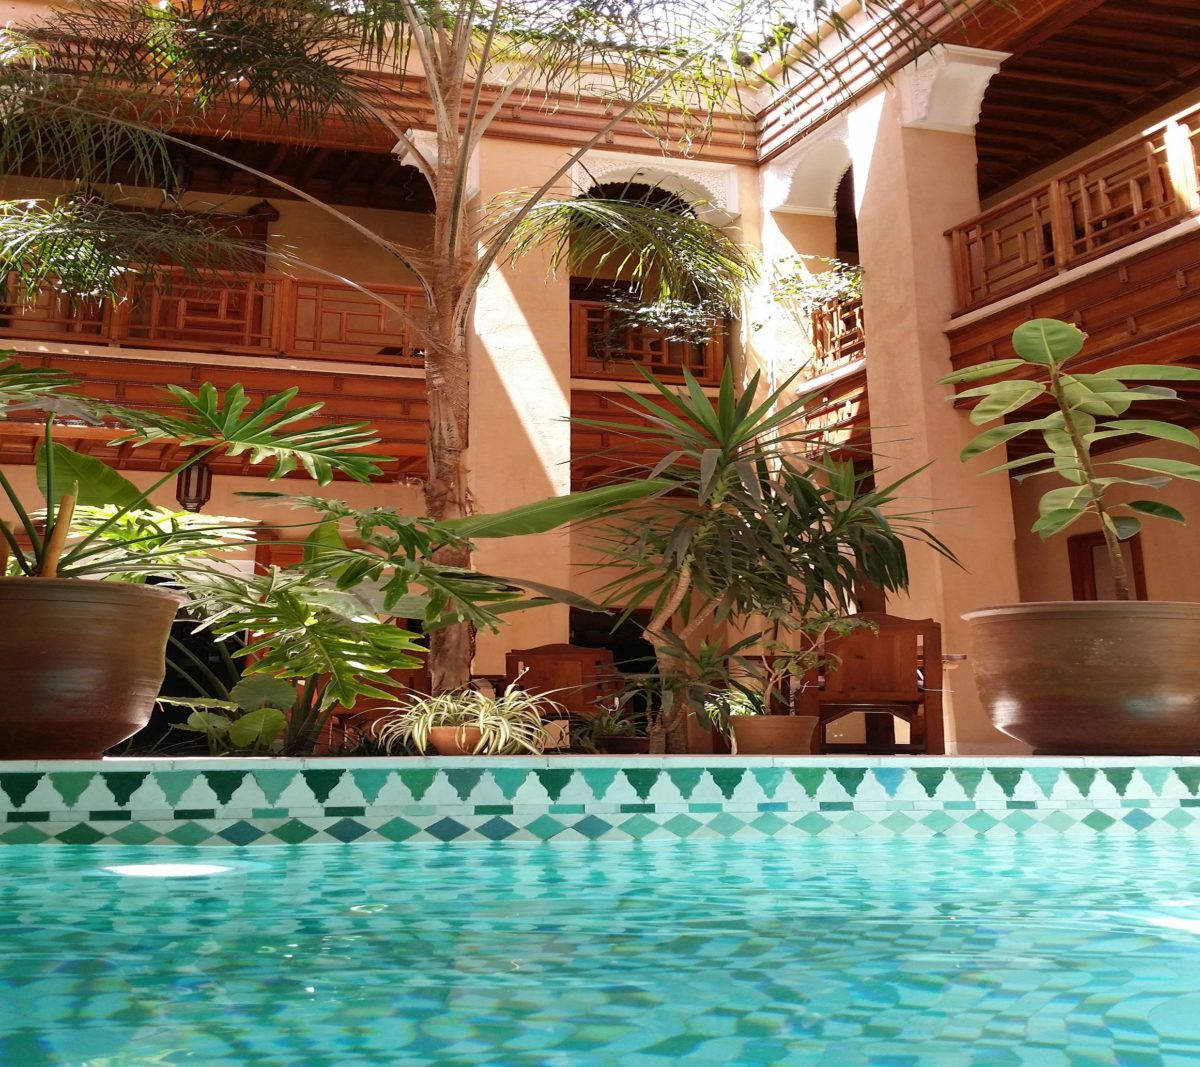 Hotel Swimming pool of Charm Marrakech medina Riad Al Ksar